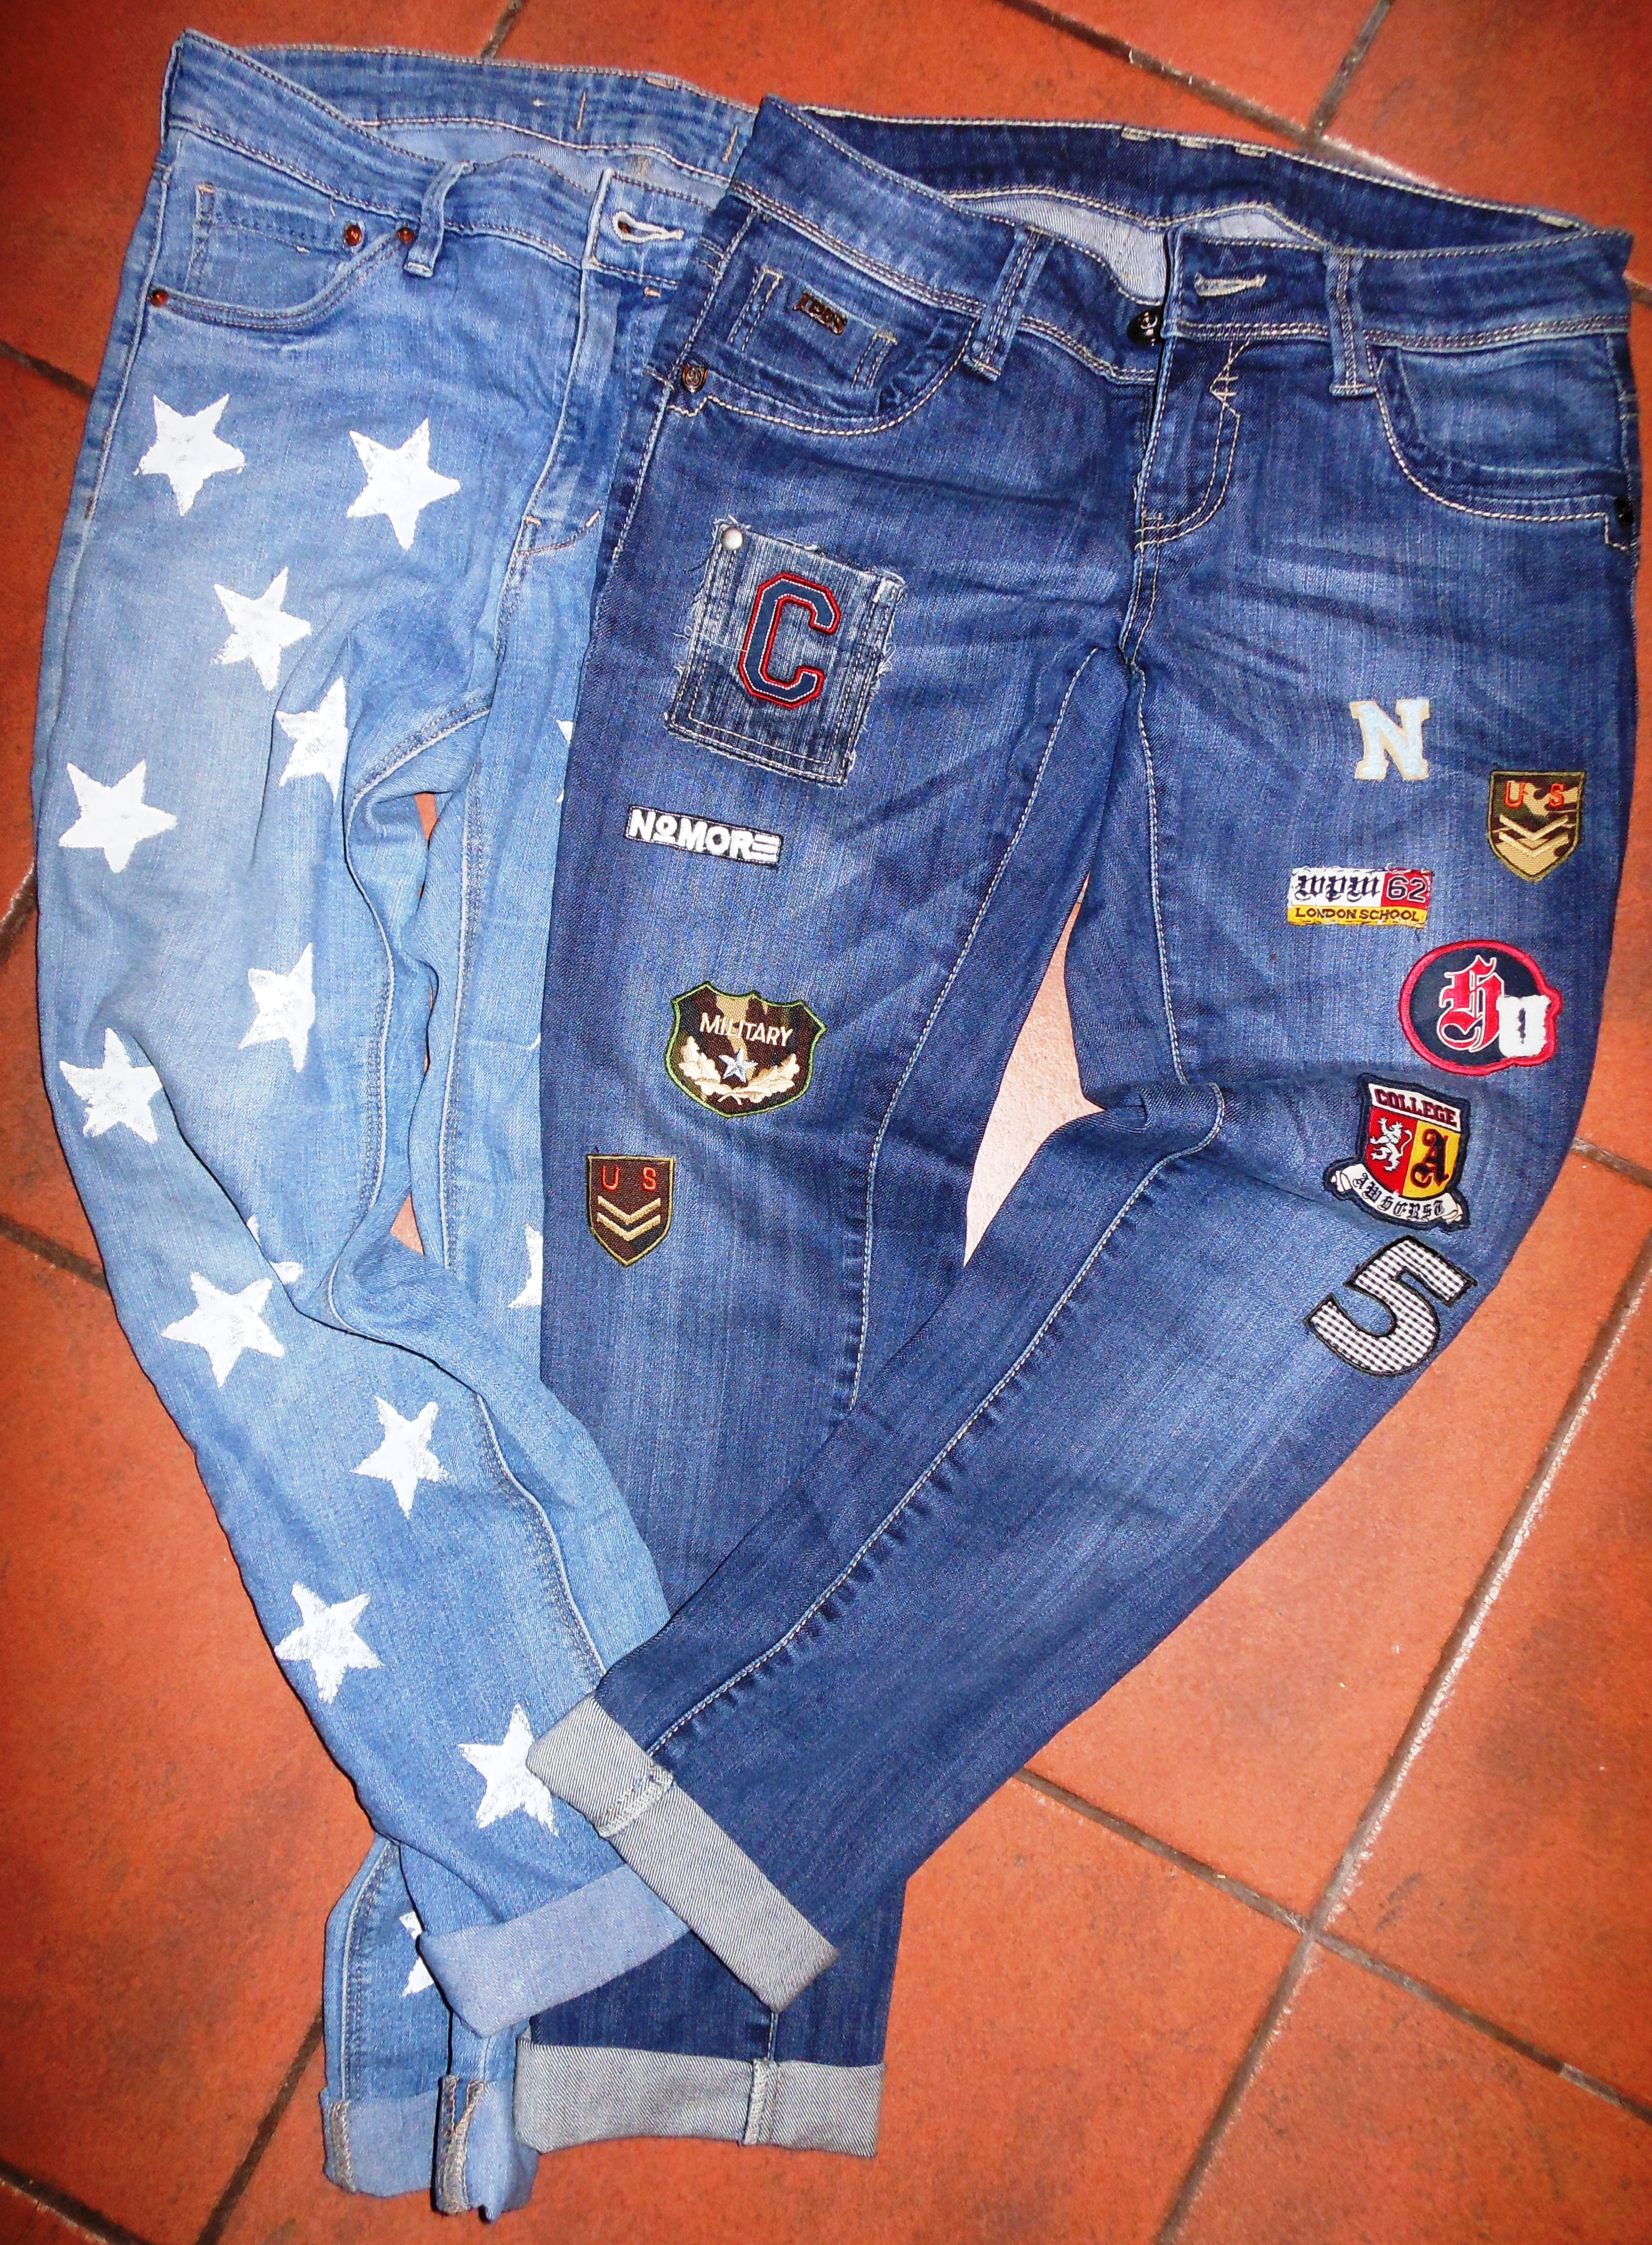 jeans_upcycled